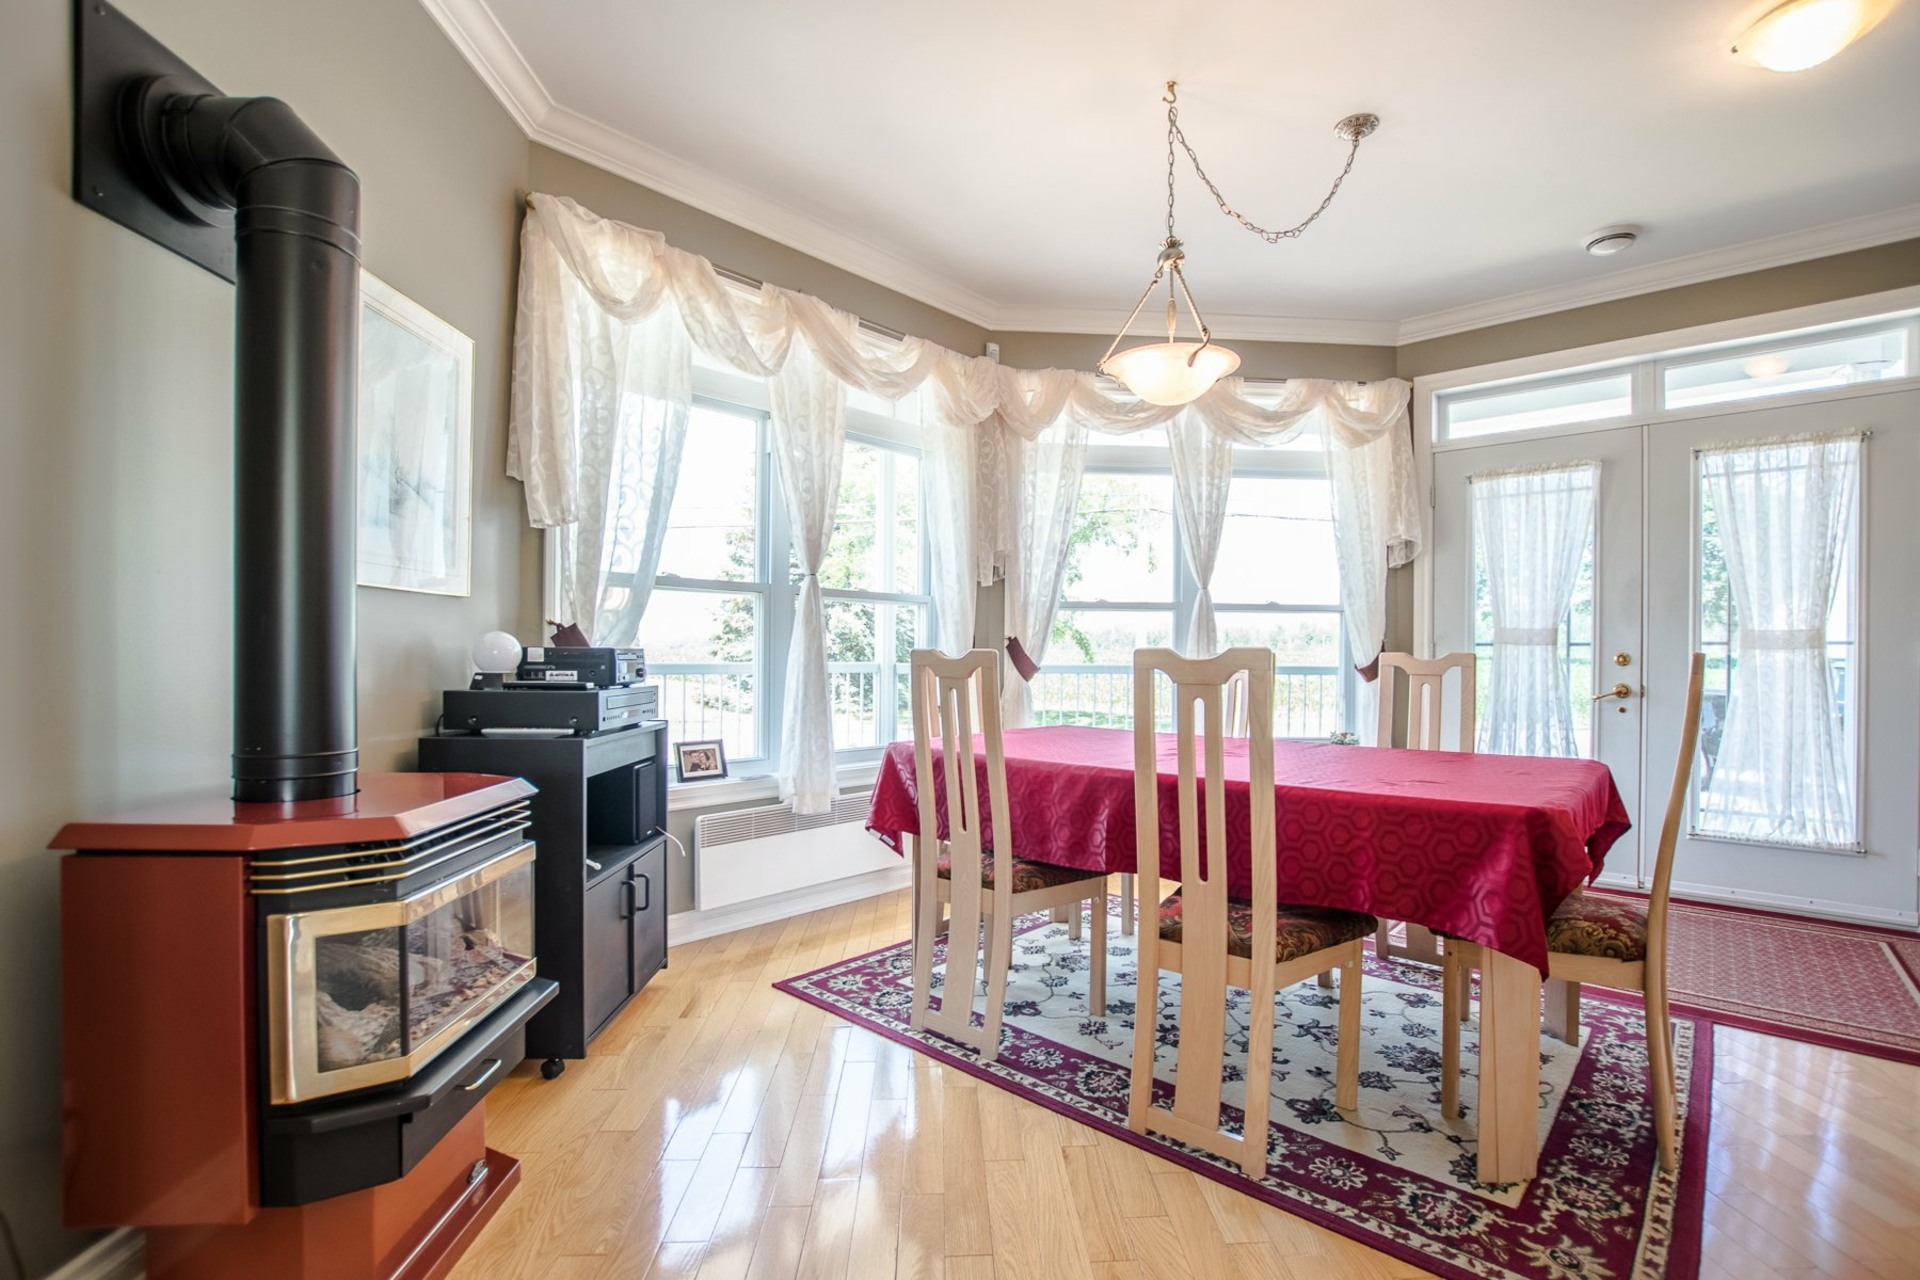 image 6 - House For sale Châteauguay - 11 rooms